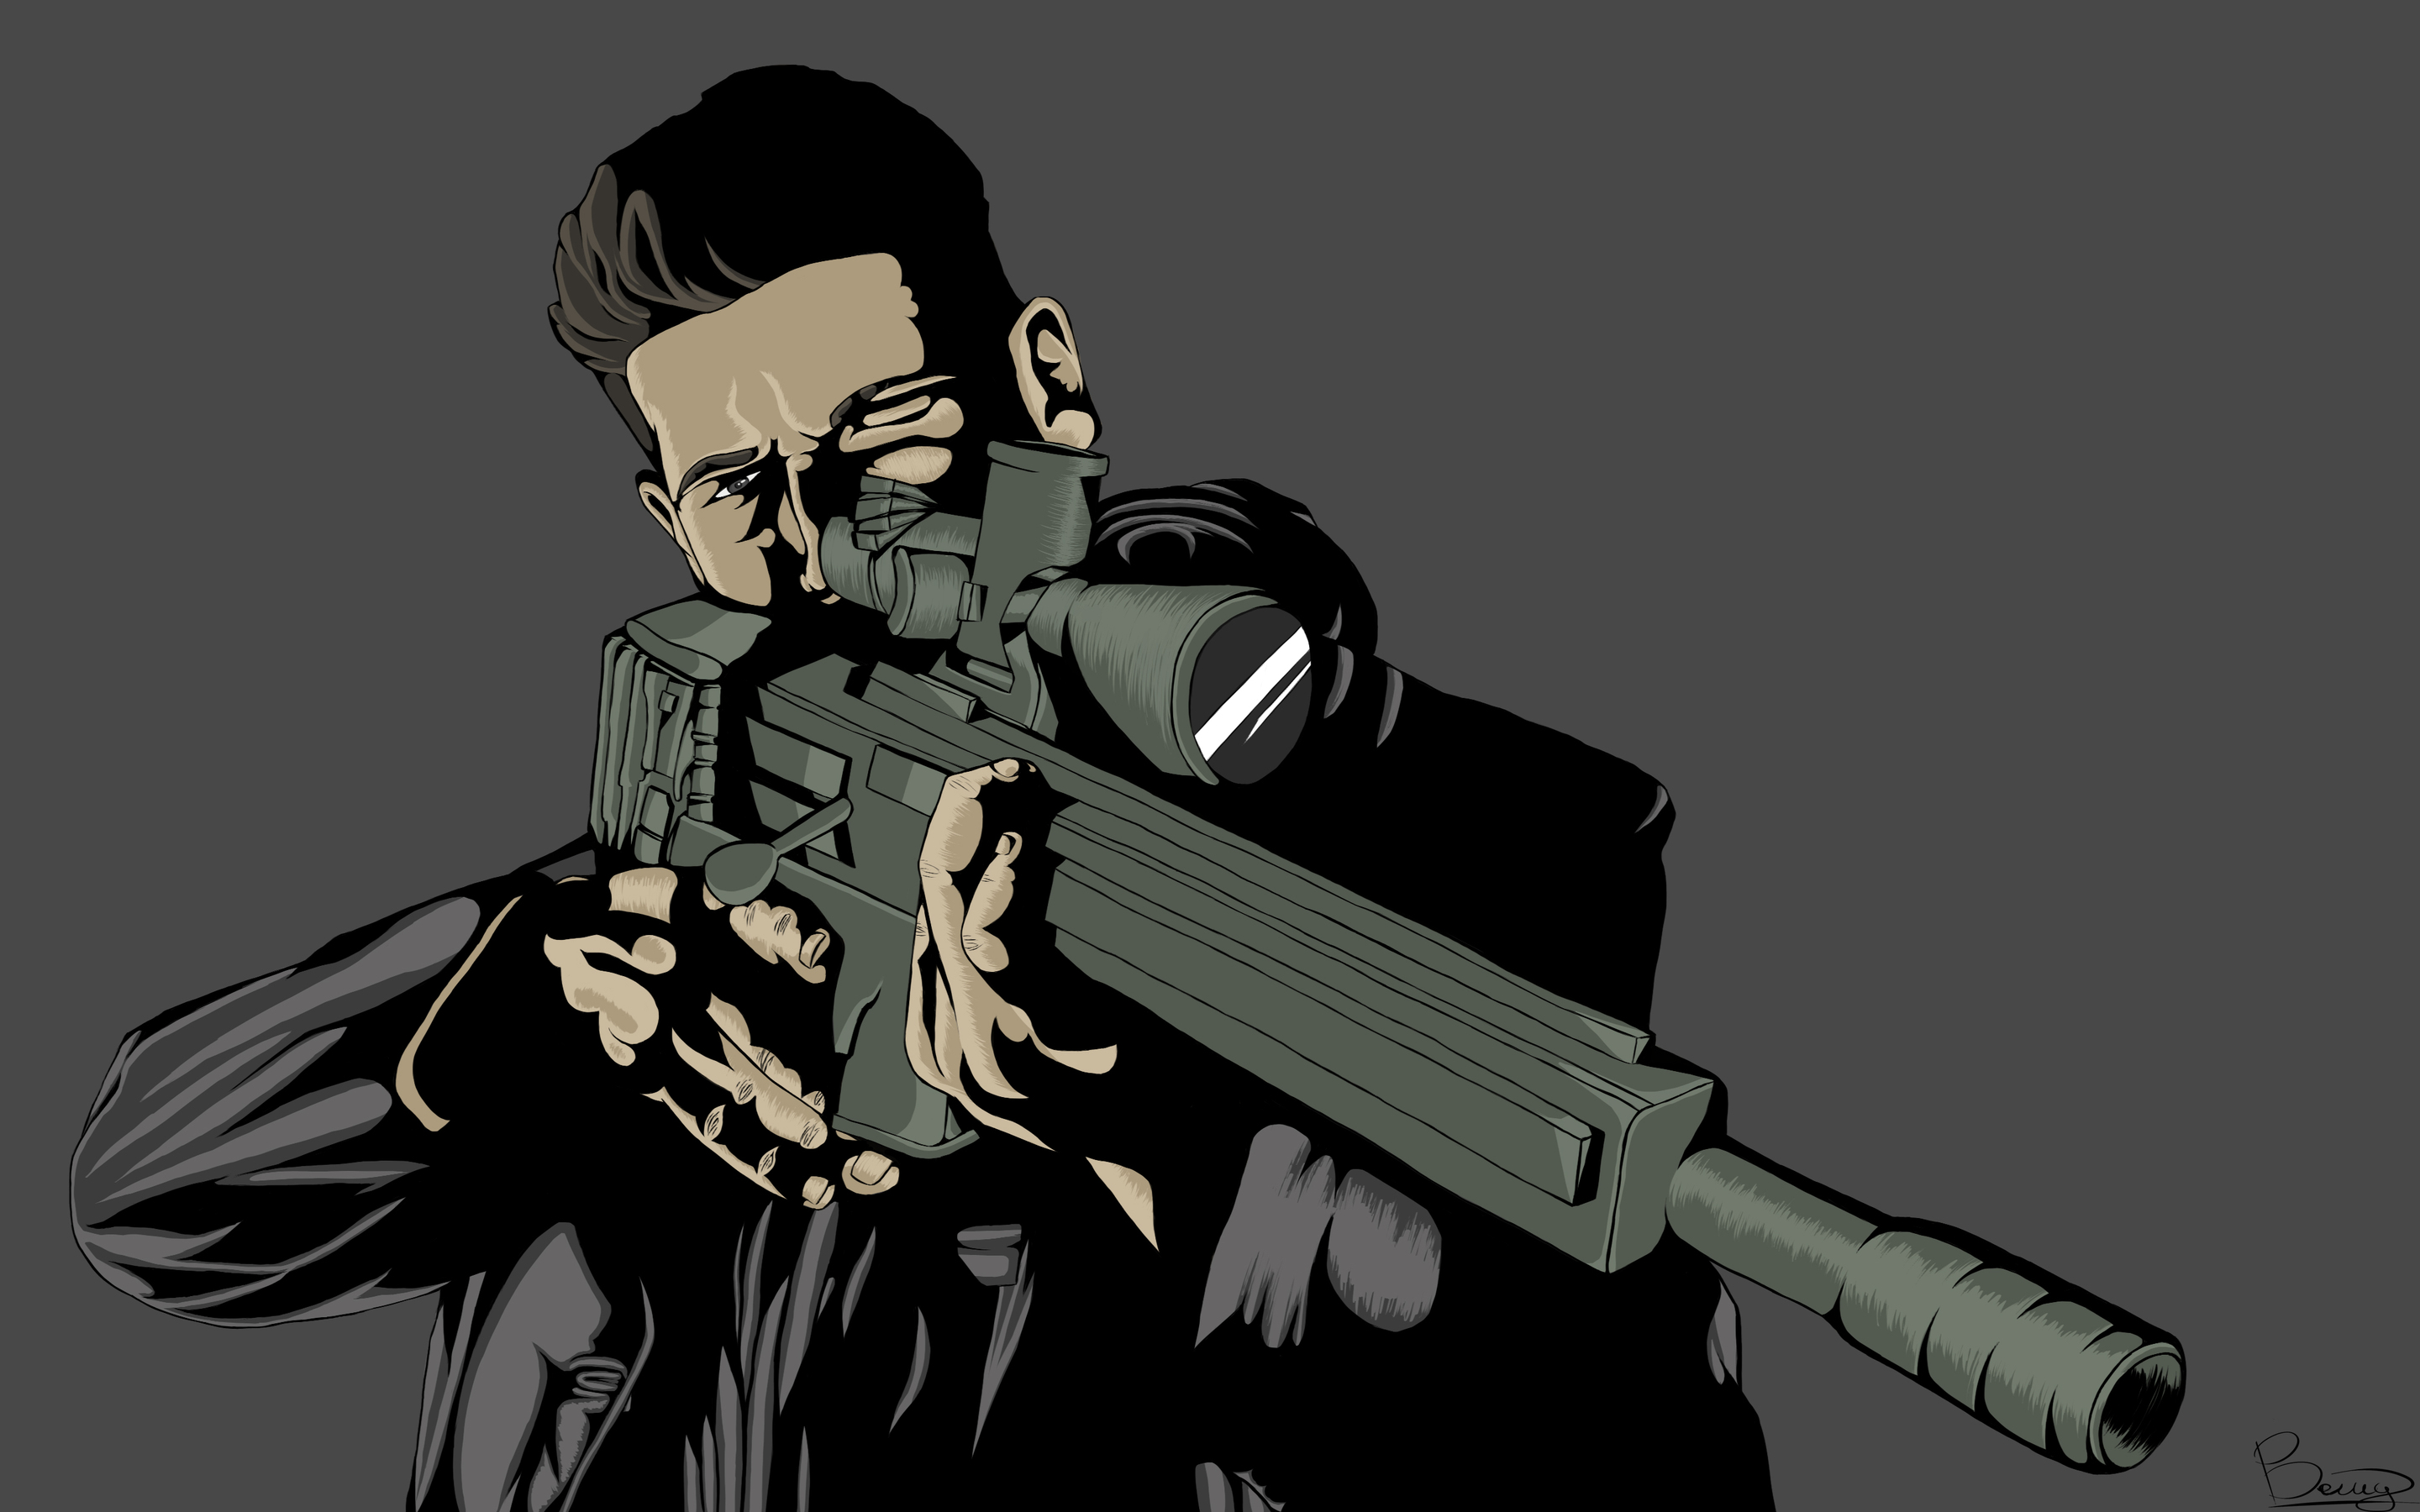 the-punisher-fanart-4k-gx.jpg